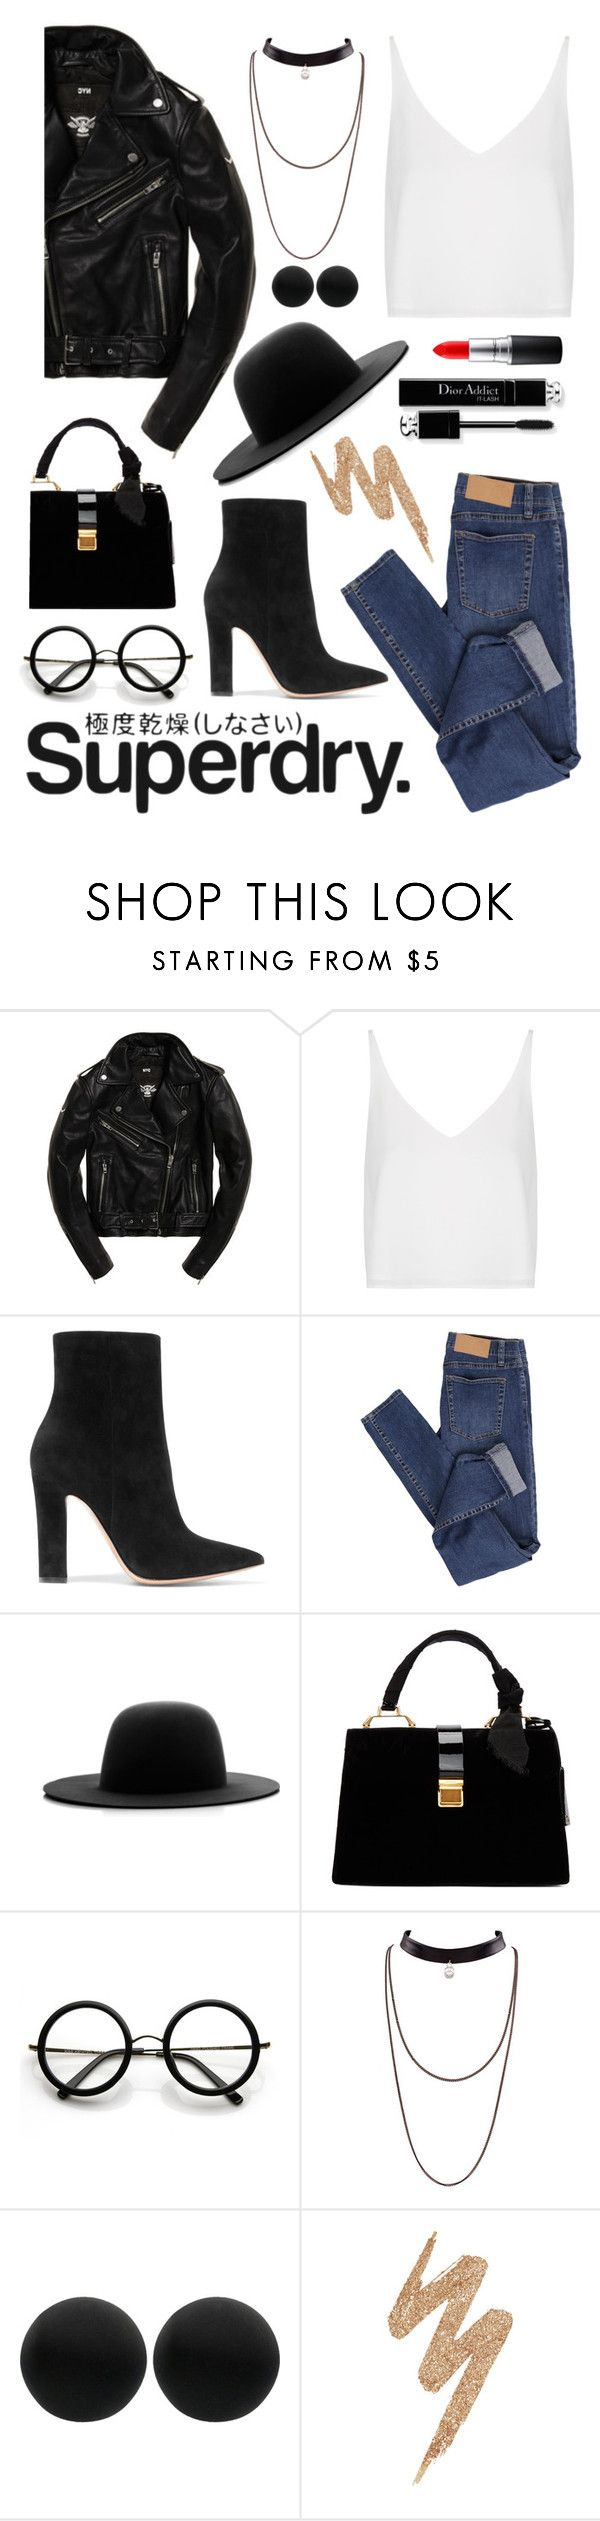 """""""The Cover Up – Jackets by Superdry: Contest Entry"""" by dn-dffn ❤ liked on Polyvore featuring Topshop, Superdry, Gianvito Rossi, Cheap Monday, Études, Miu Miu, ZeroUV, Thomas Sabo, Urban Decay and MAC Cosmetics"""